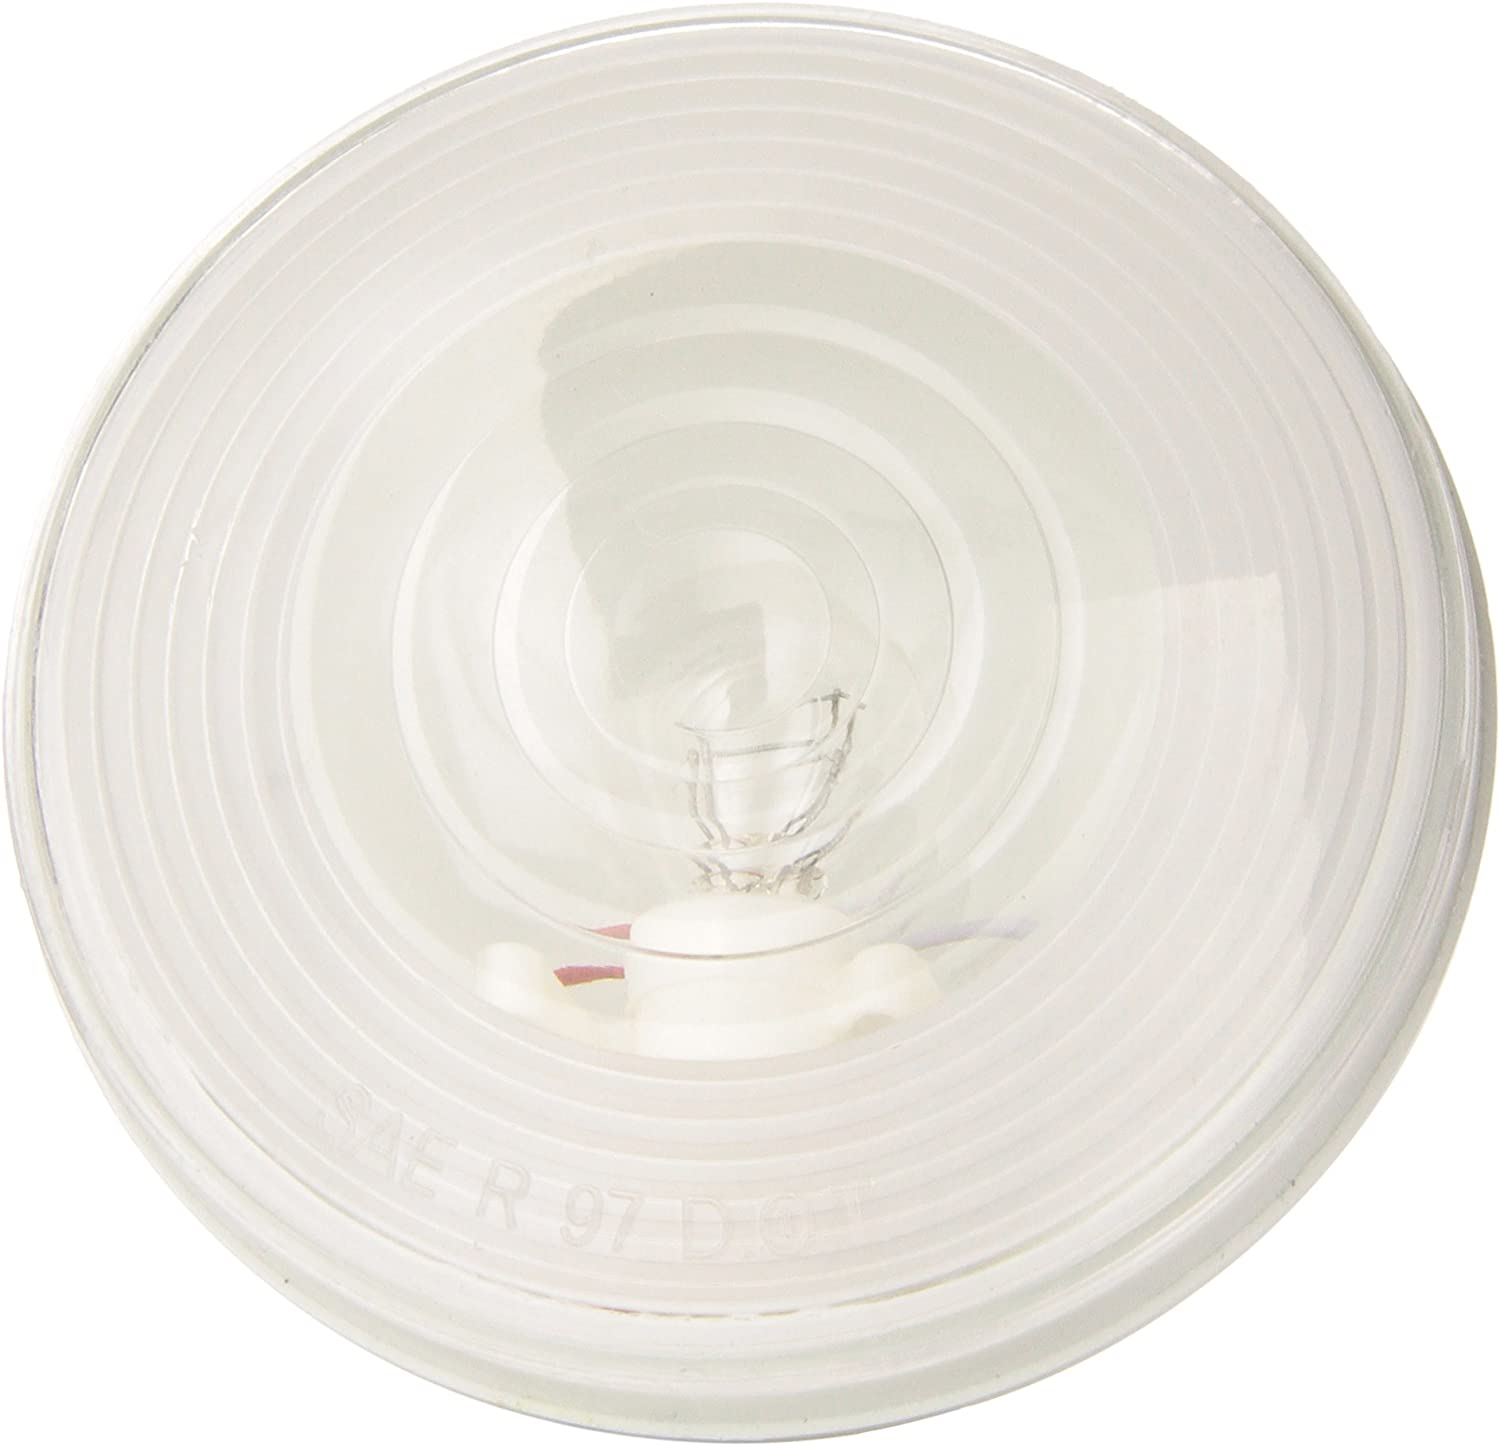 Bargman 40-01-003 Sealed Backup Light